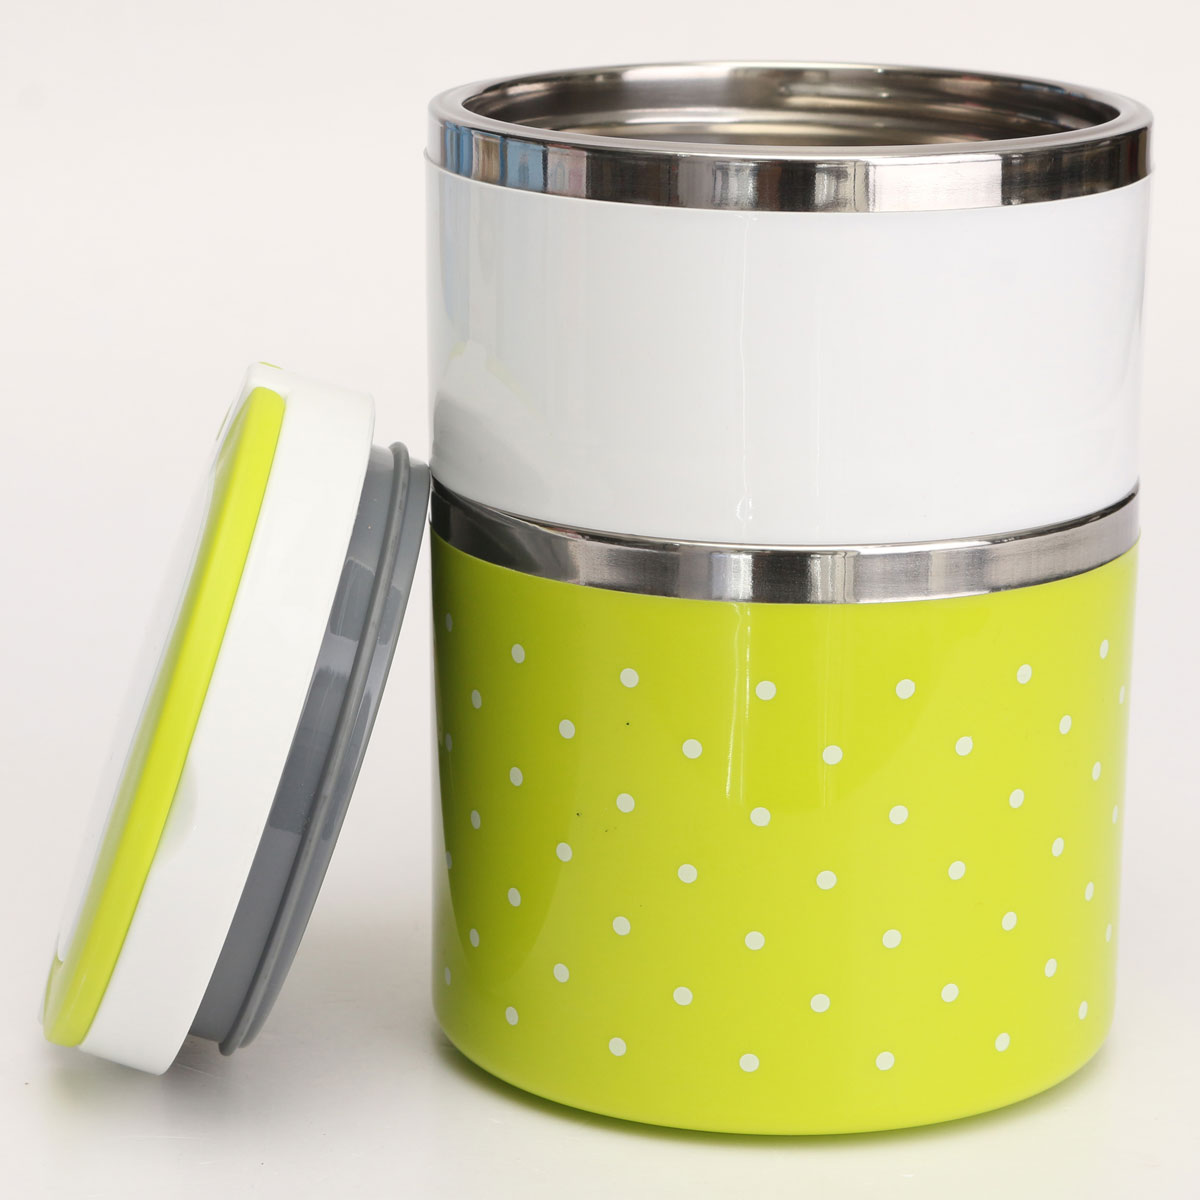 2 layer cute stainless steel lunch box insulation bento food picnic container green export. Black Bedroom Furniture Sets. Home Design Ideas